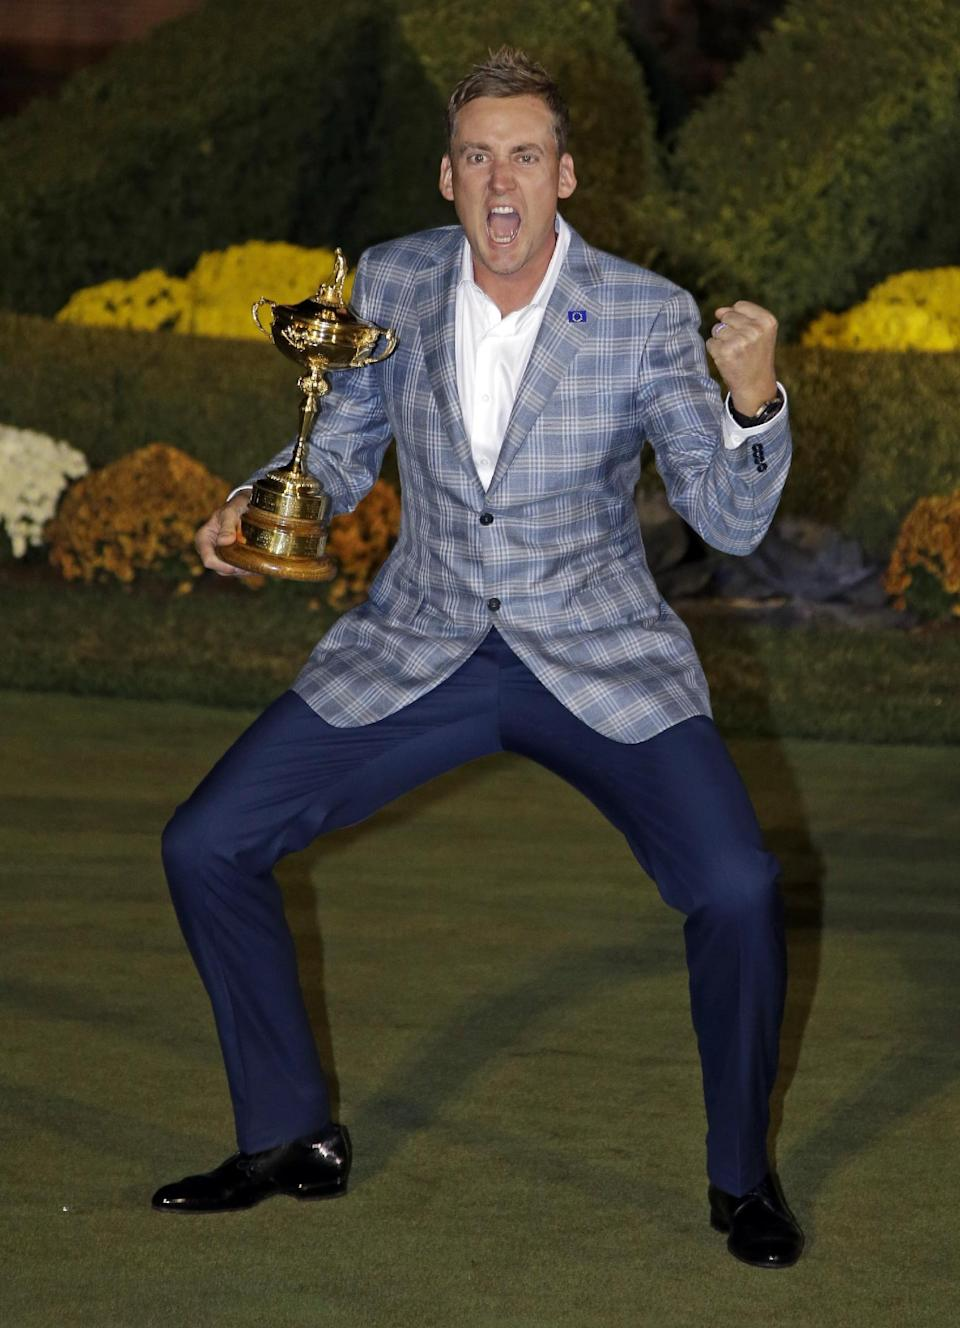 Europe's Ian Poulter celebrates with the trophy after winning the Ryder Cup PGA golf tournament Sunday, Sept. 30, 2012, at the Medinah Country Club in Medinah, Ill. (AP Photo/Chris Carlson)